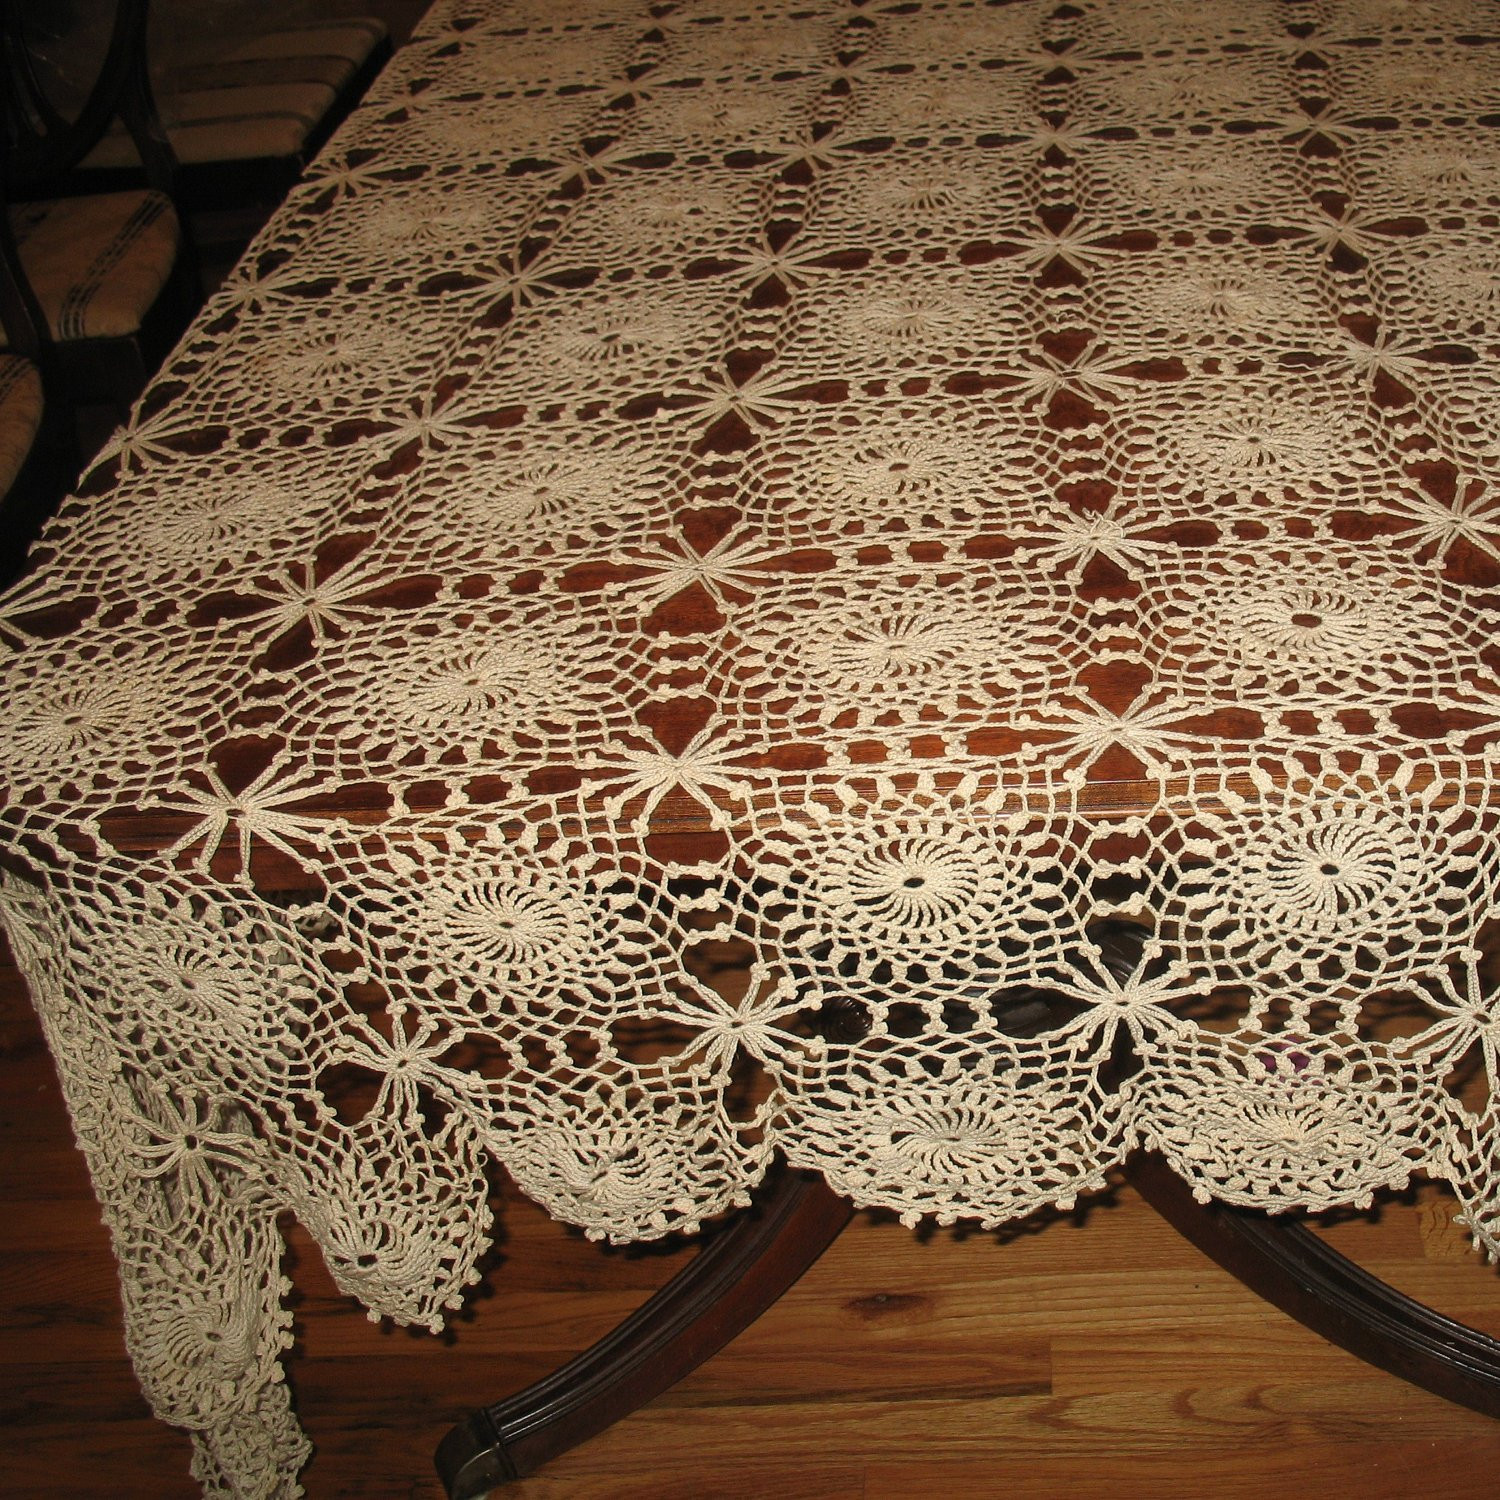 Best Of Vintage Hand Crocheted Tablecloth Lacy Crochet Tablecloth Lacy Crochet Of Innovative 50 Pics Lacy Crochet